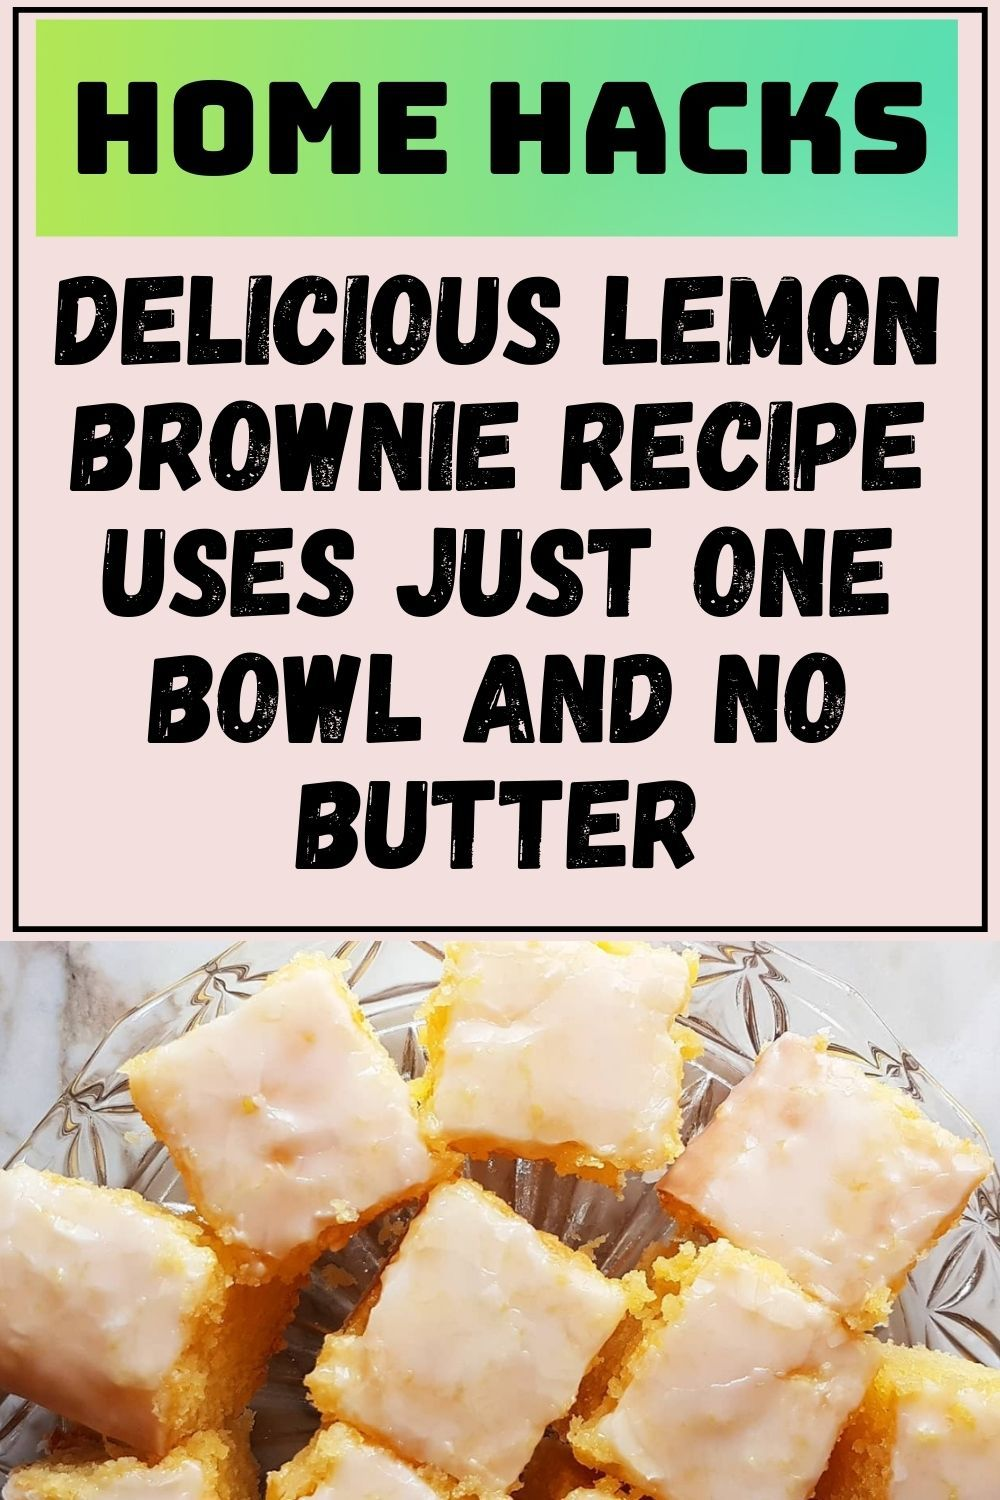 Delicious Lemon Brownie Recipe Uses Just One Bowl